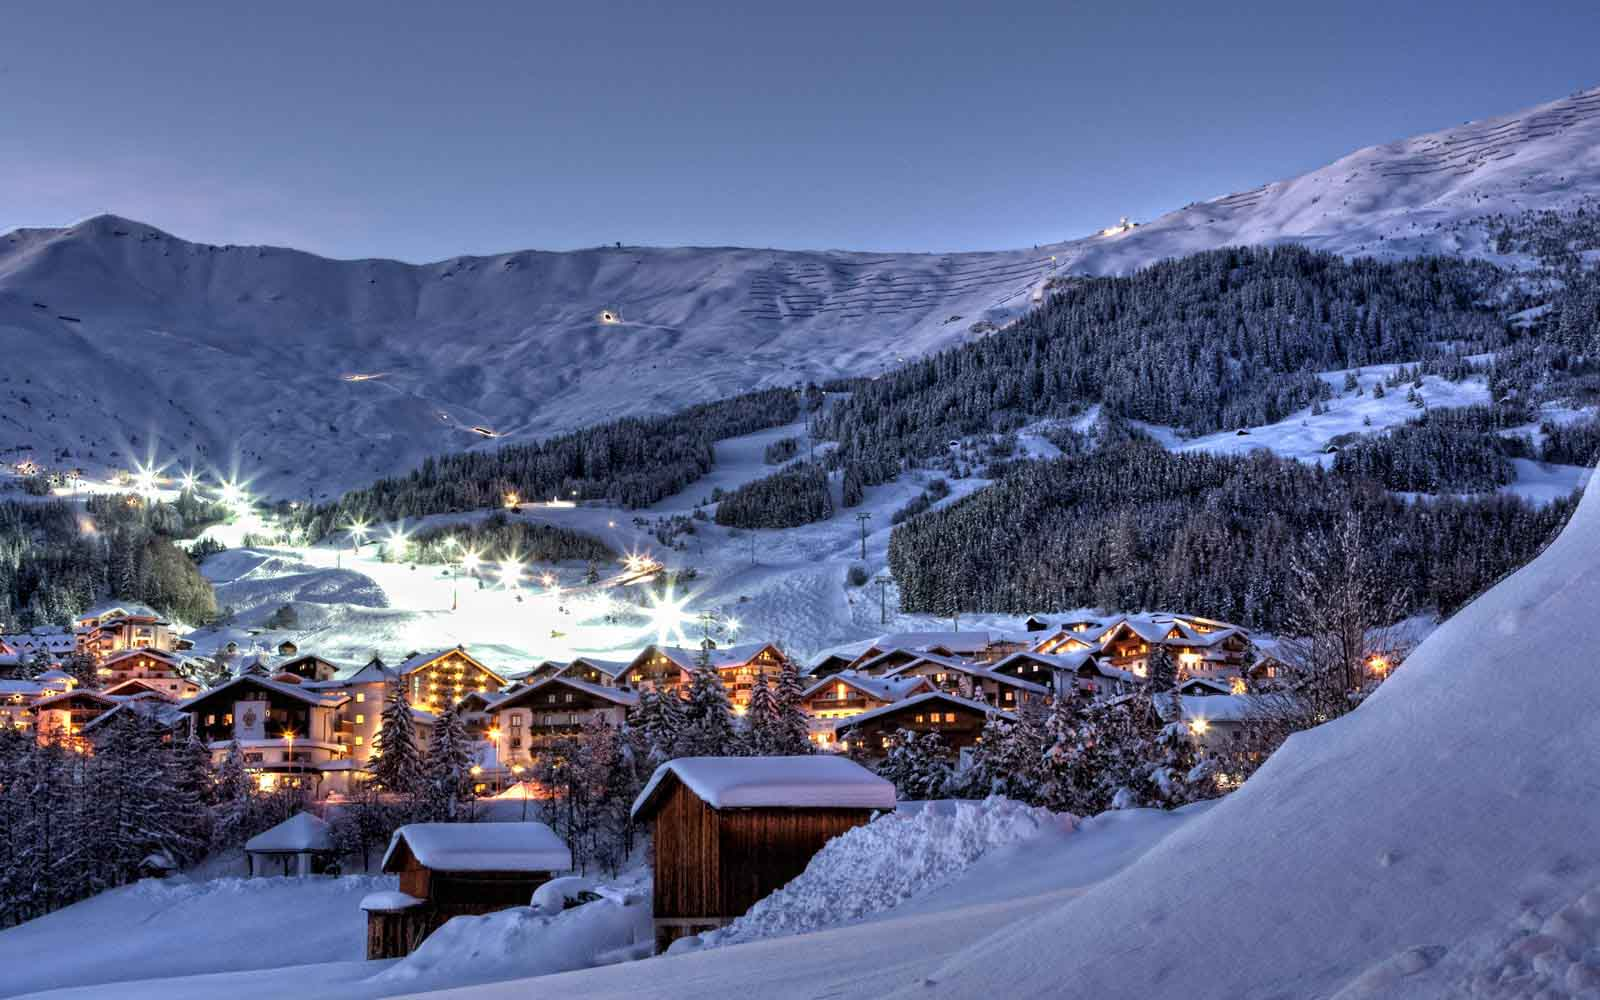 Hotel Tirol Fiss Serfaus-Ladis-Fiss Tyrol Austria Lifestyle-Hotel Winter Holidays Skiing Fiss at Night in Winter